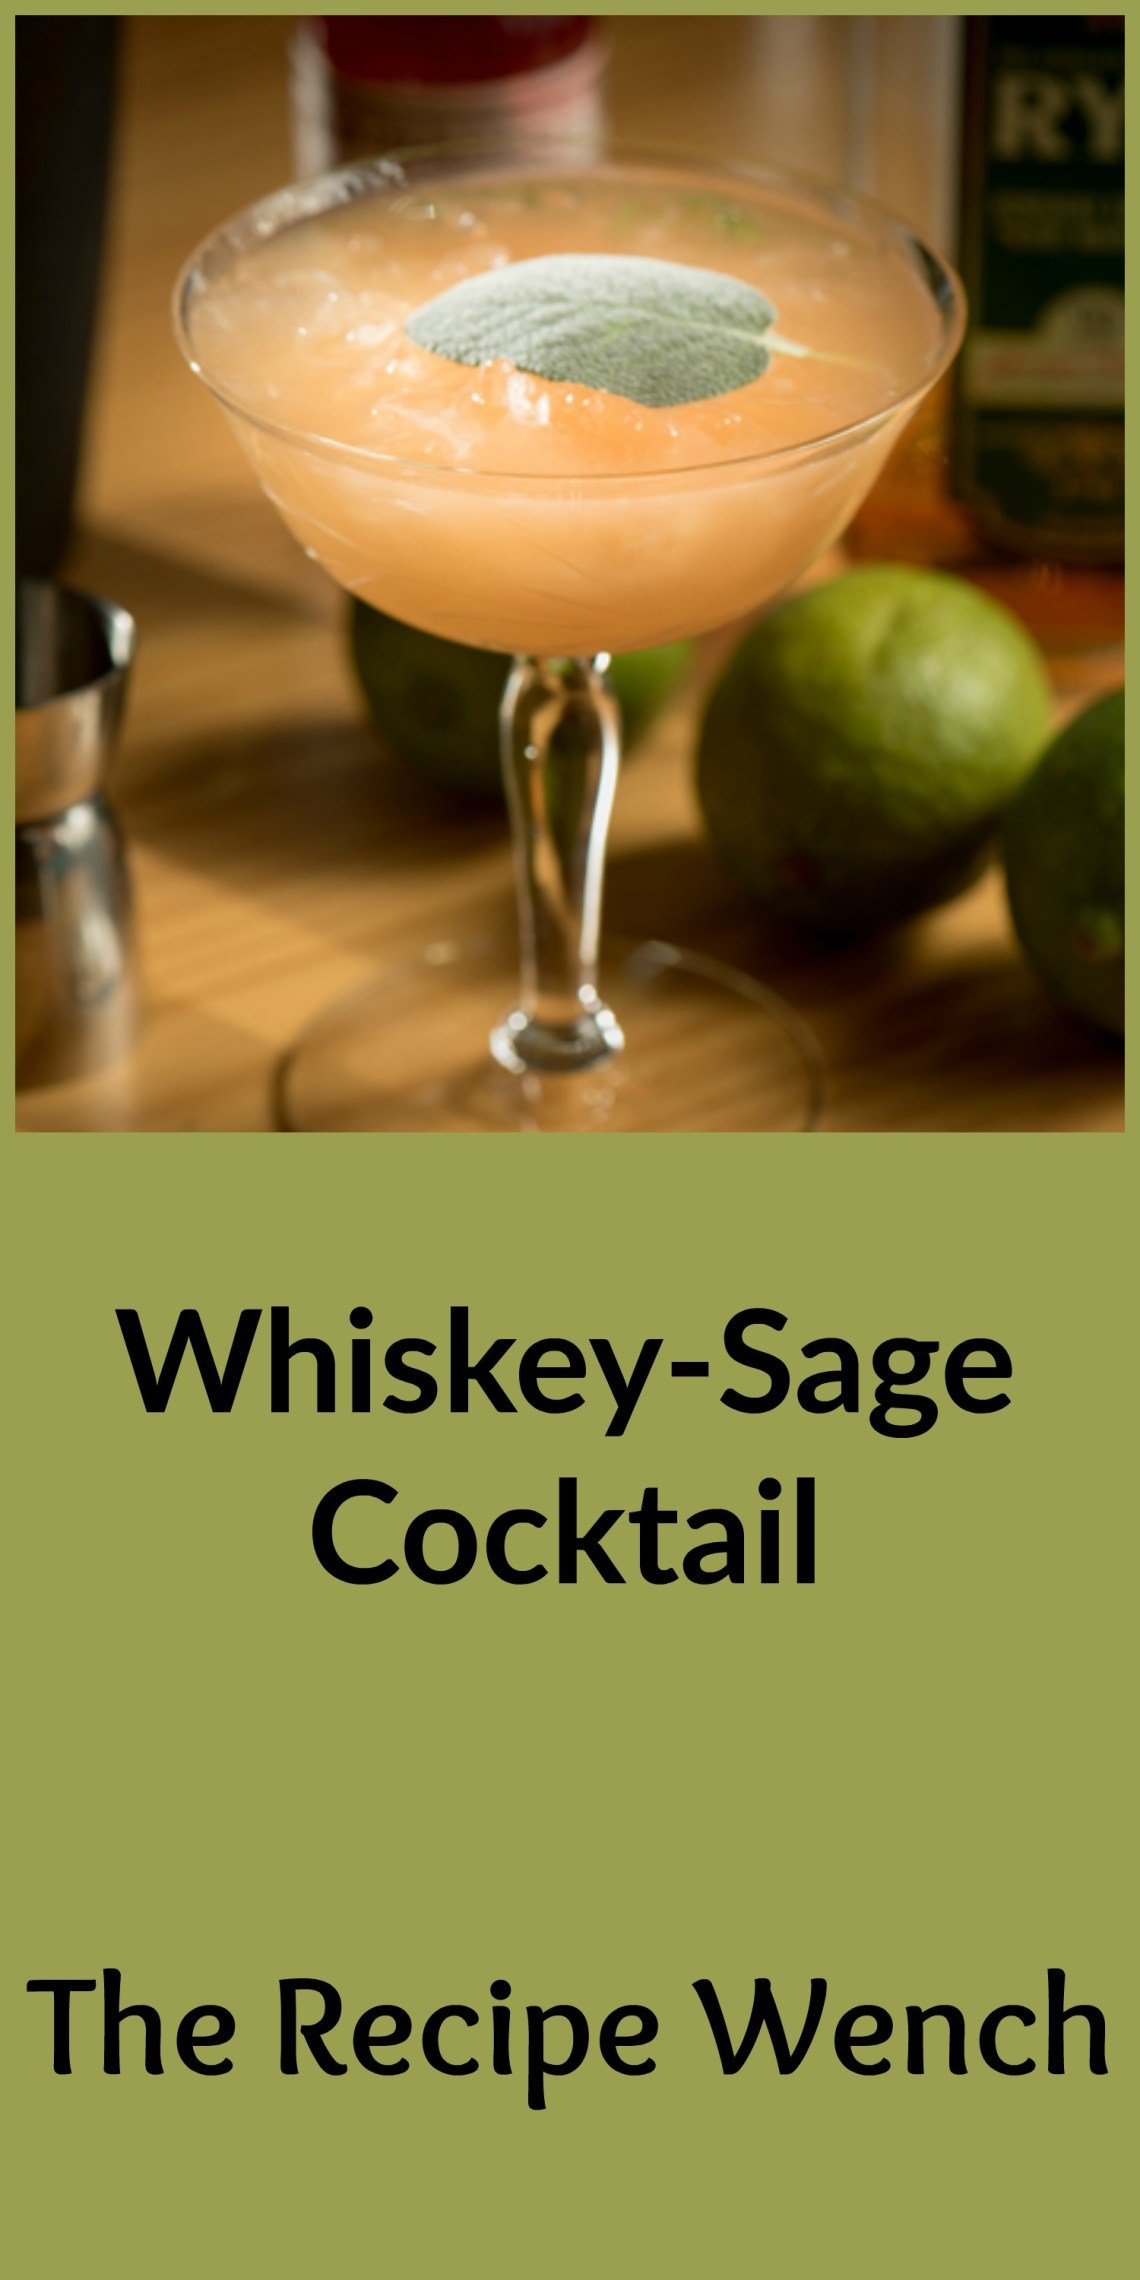 Sexy whiskey sage cocktail unites spicy whiskey and sage to bring you a cocktail perfect for sipping in the cooler winter months. It's a handsome drink too! Win!  